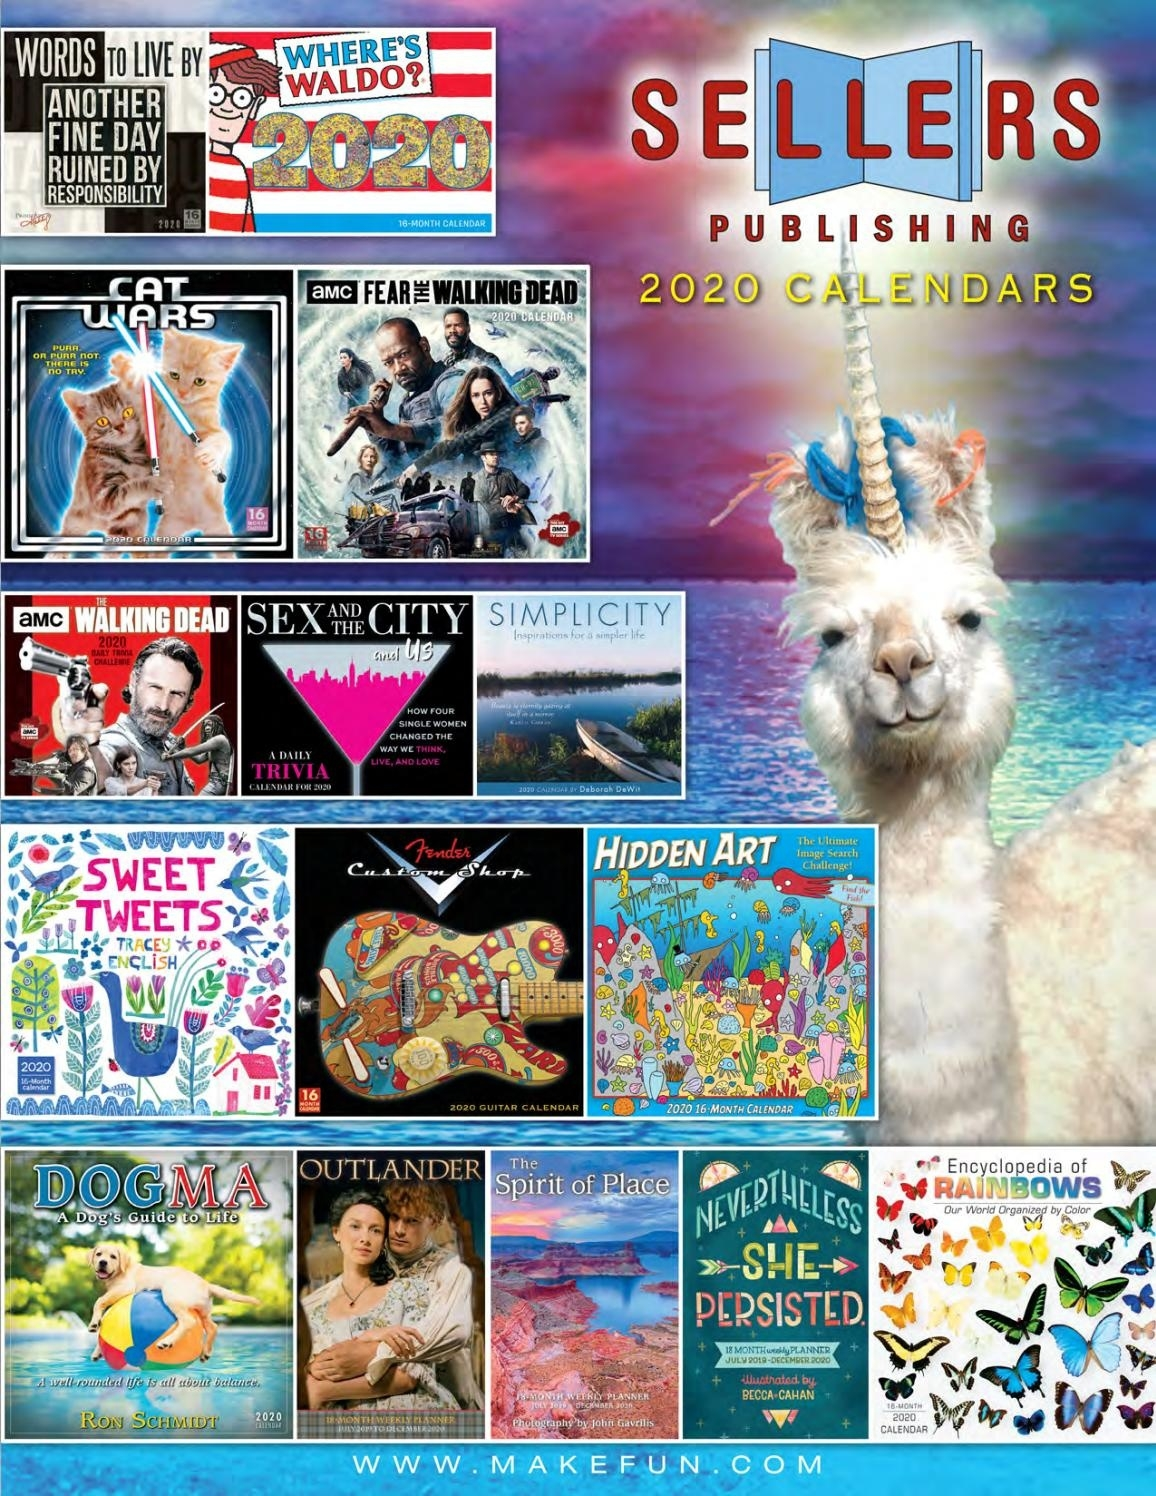 2020 Calendars From Sellers Publishing By Sellers Publishing - Issuu_Unit 5 School Calendar 2020-18